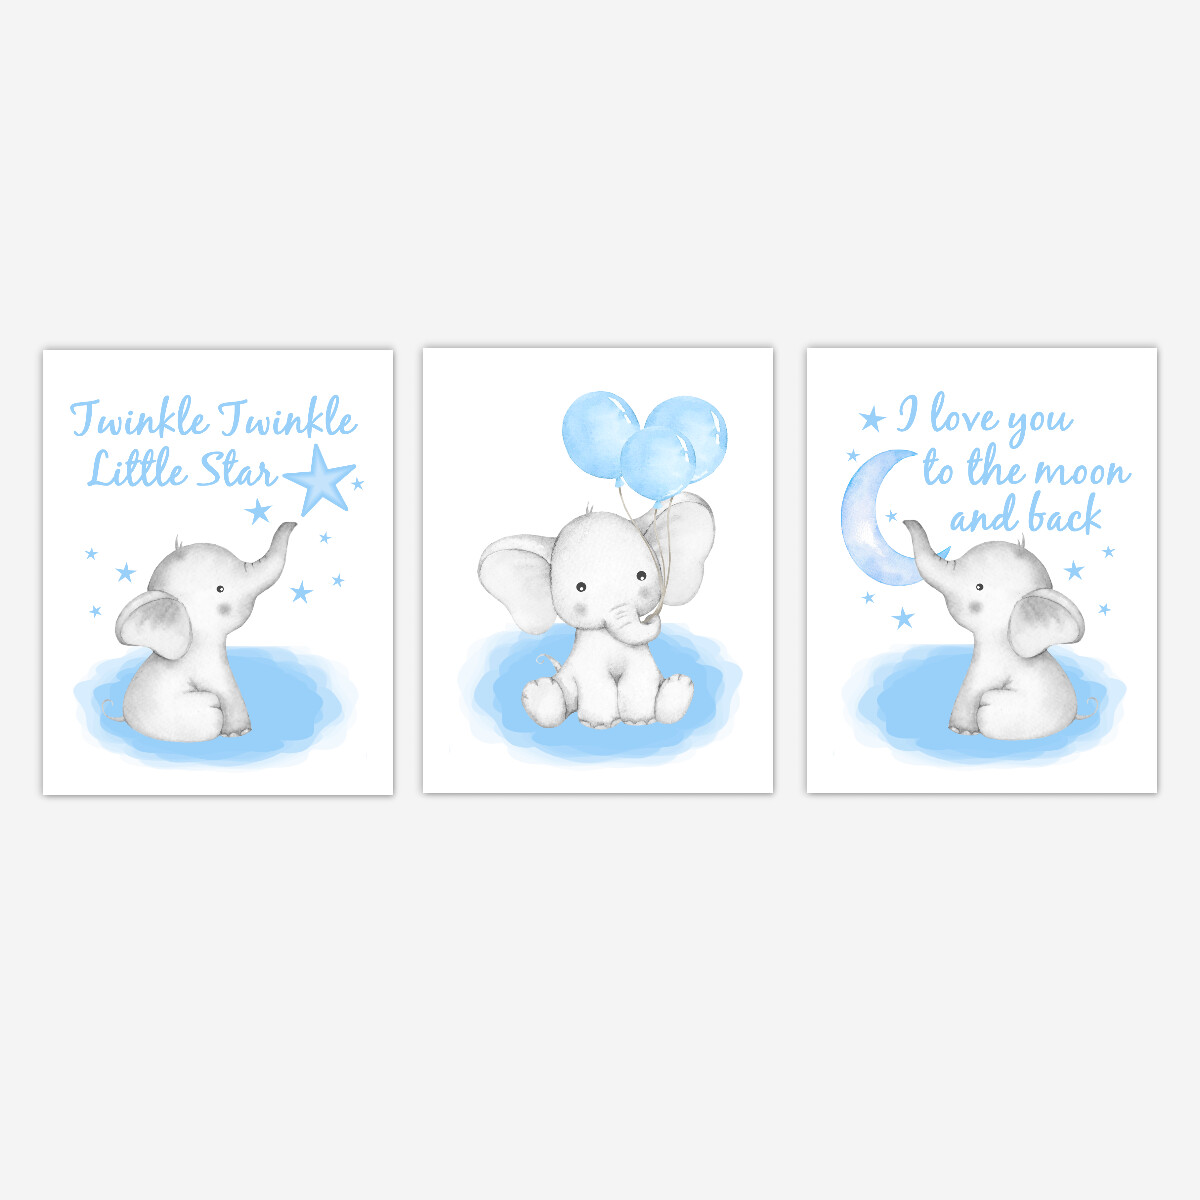 Watercolor Blue Elephants With Balloons Baby Boy Nursery Art Wall Decor 3 UNFRAMED PRINTS or CANVAS